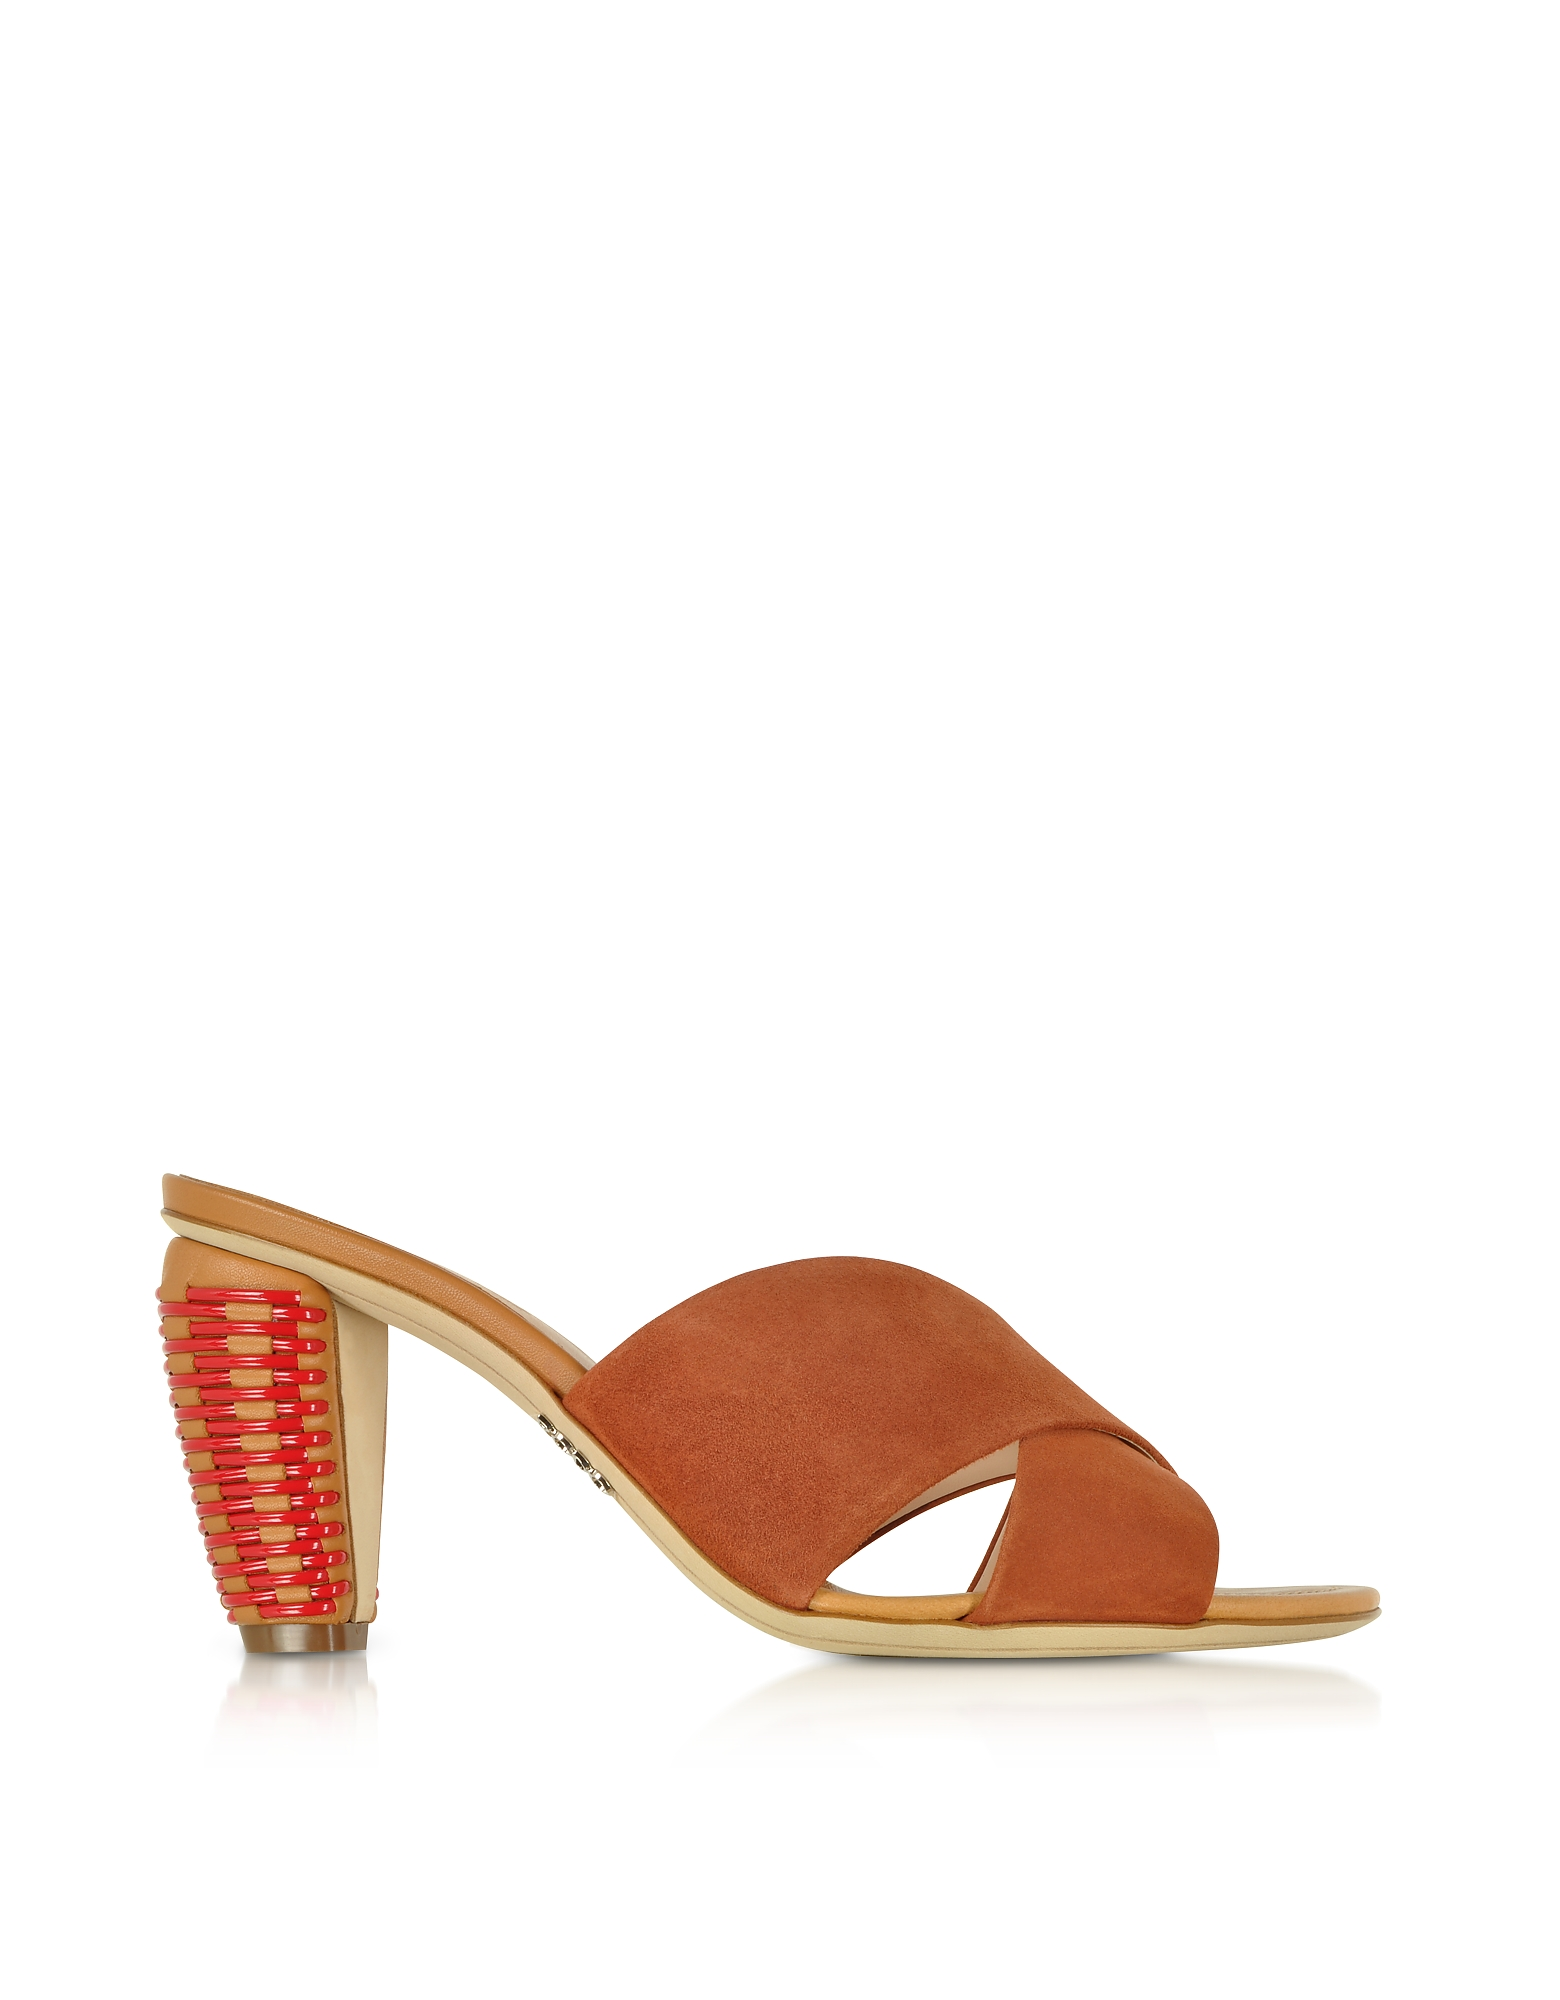 Rodo Shoes, Brown Suede 8MM Criss-Cross Slide Sandals